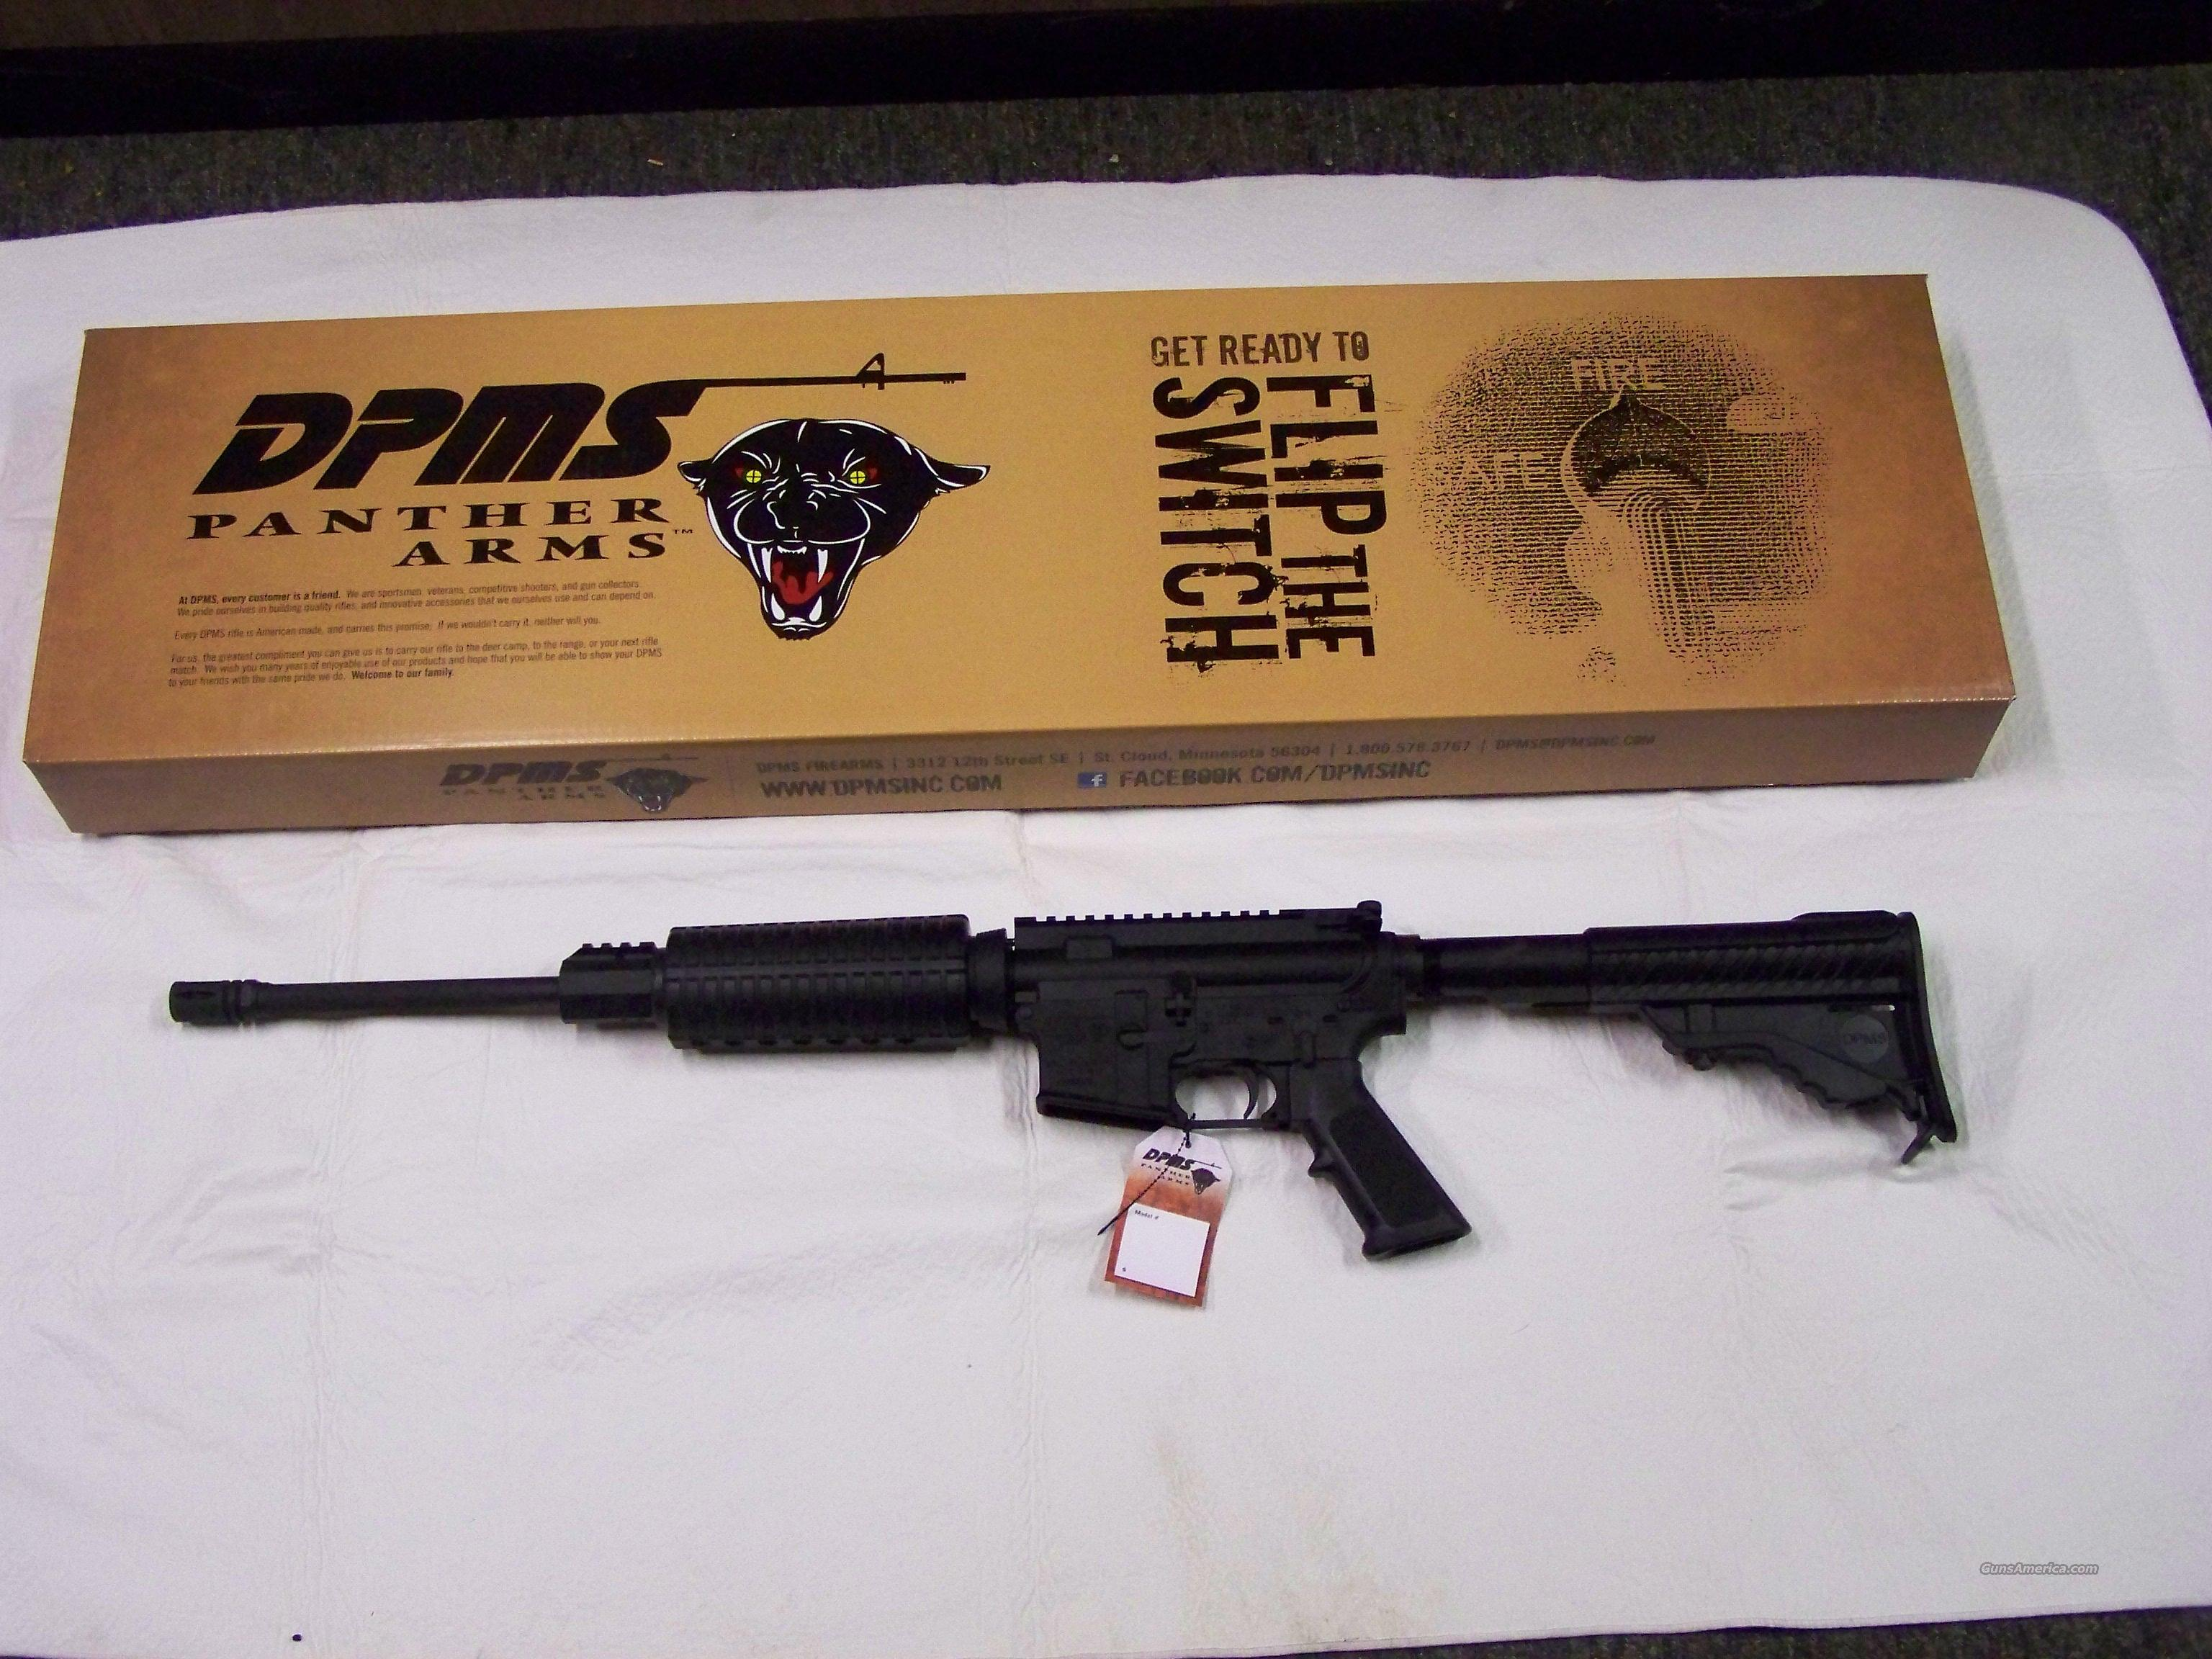 DPMS Panther Arms AR-15  Guns > Rifles > AR-15 Rifles - Small Manufacturers > Complete Rifle